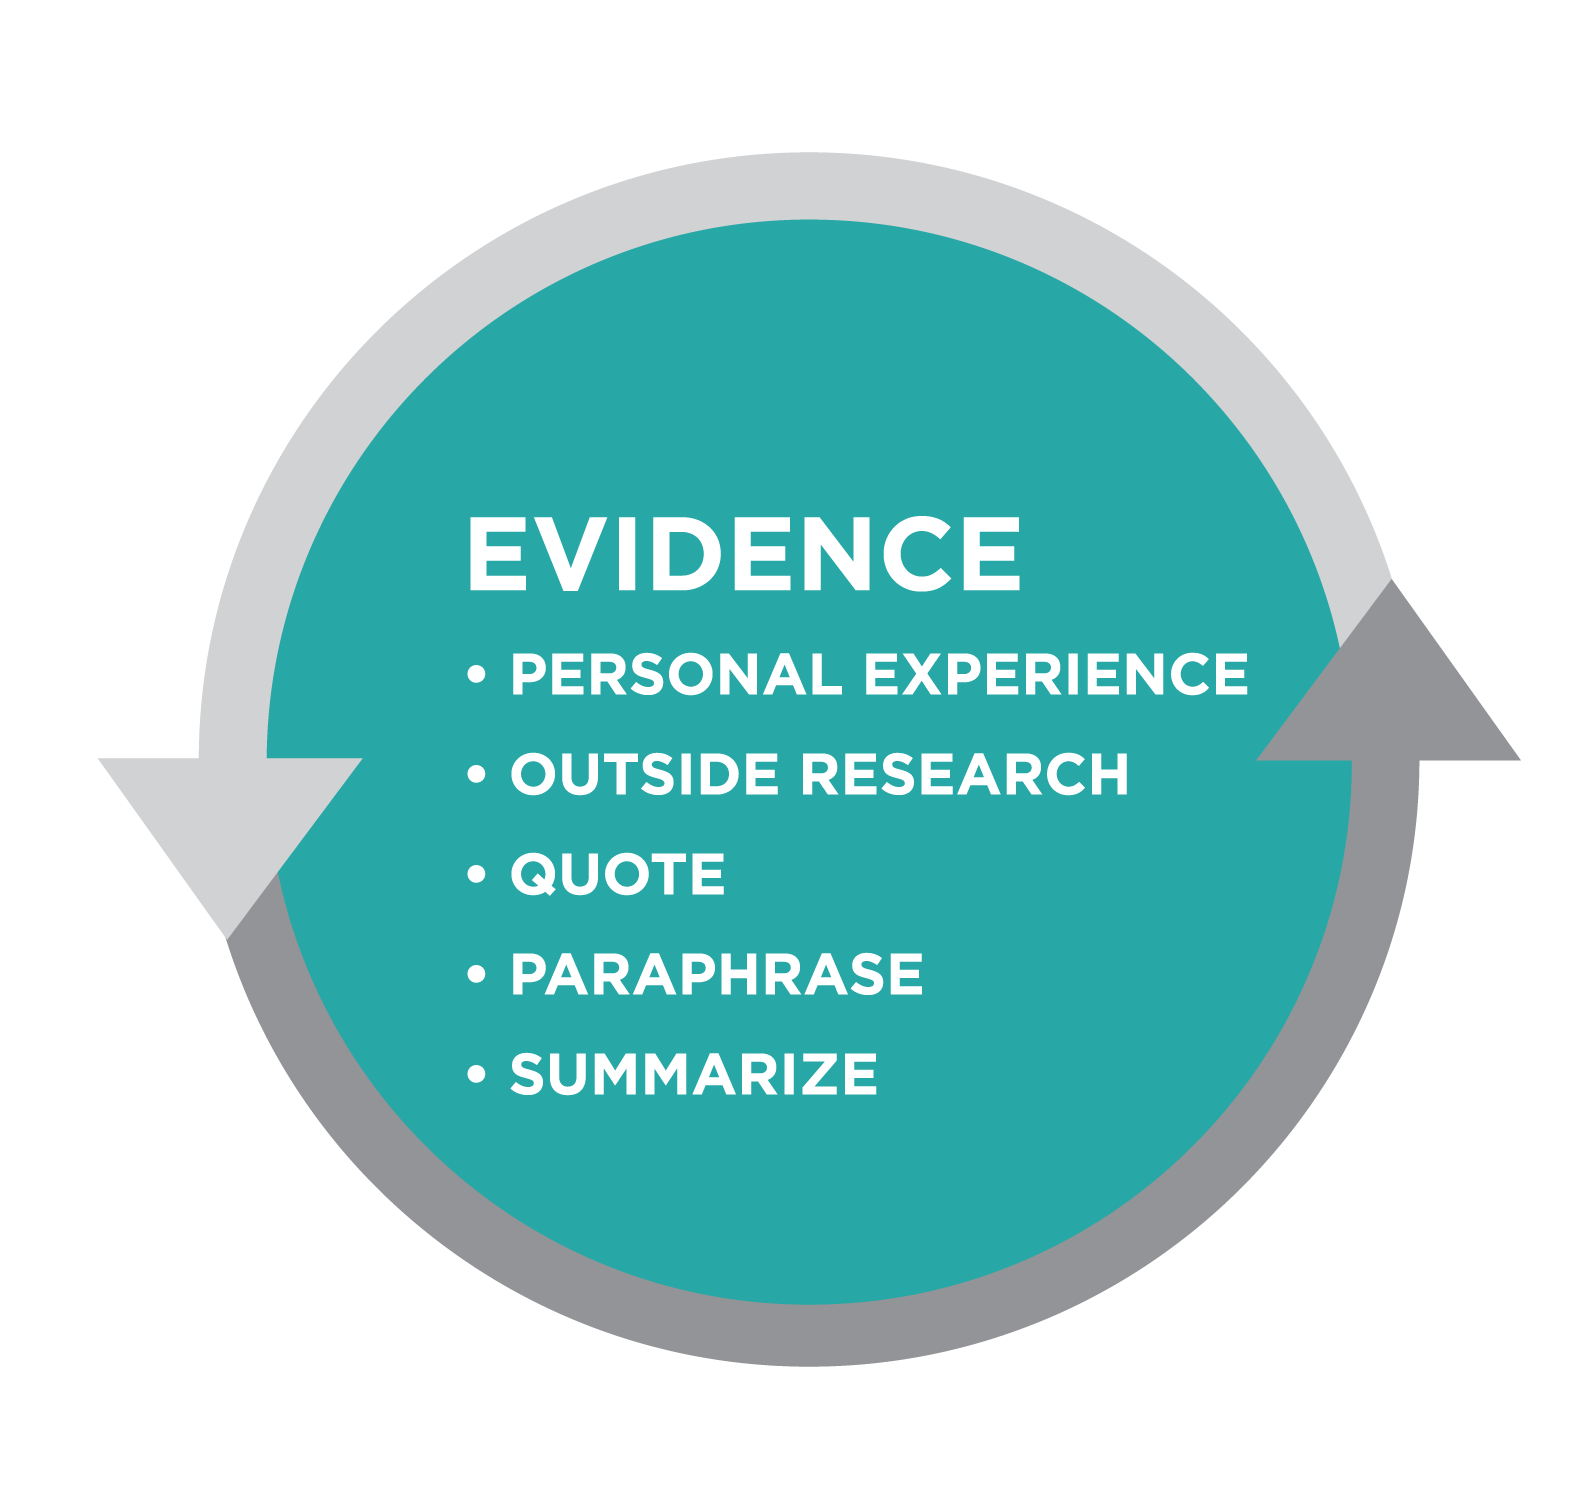 """Evidence"" bullet list: Personal Experience, Outside Research, Quote, Paraphrase, Summarize."